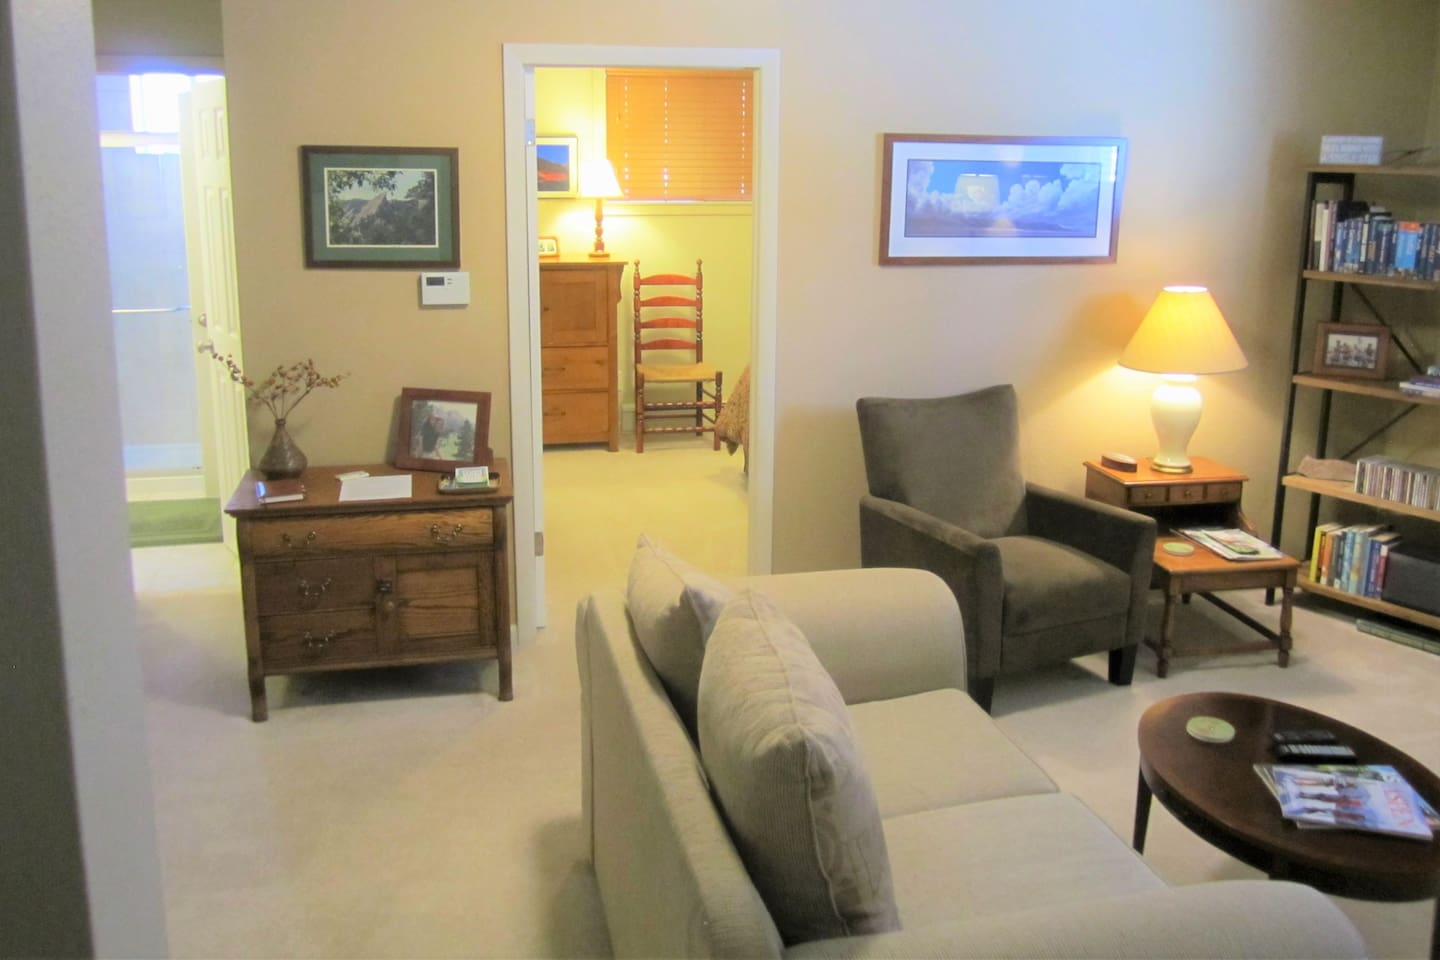 Private suite has family room, bedroom and bath